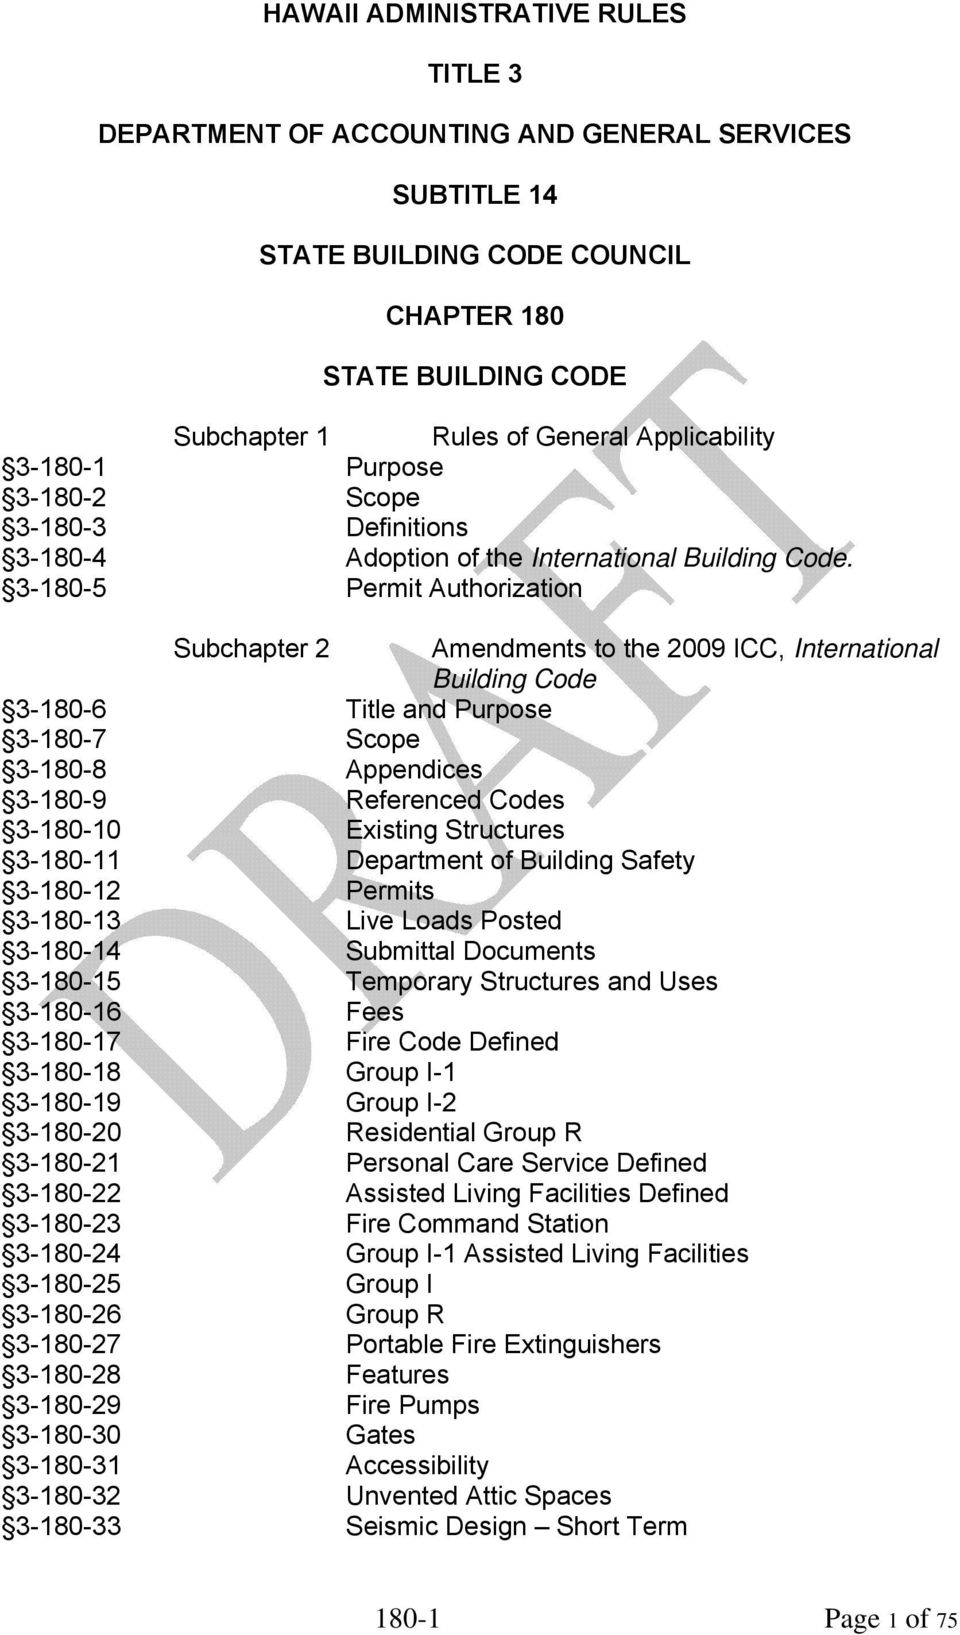 3-180-5 Permit Authorization Subchapter 2 Amendments to the 2009 ICC, International Building Code 3-180-6 Title and Purpose 3-180-7 Scope 3-180-8 Appendices 3-180-9 Referenced Codes 3-180-10 Existing